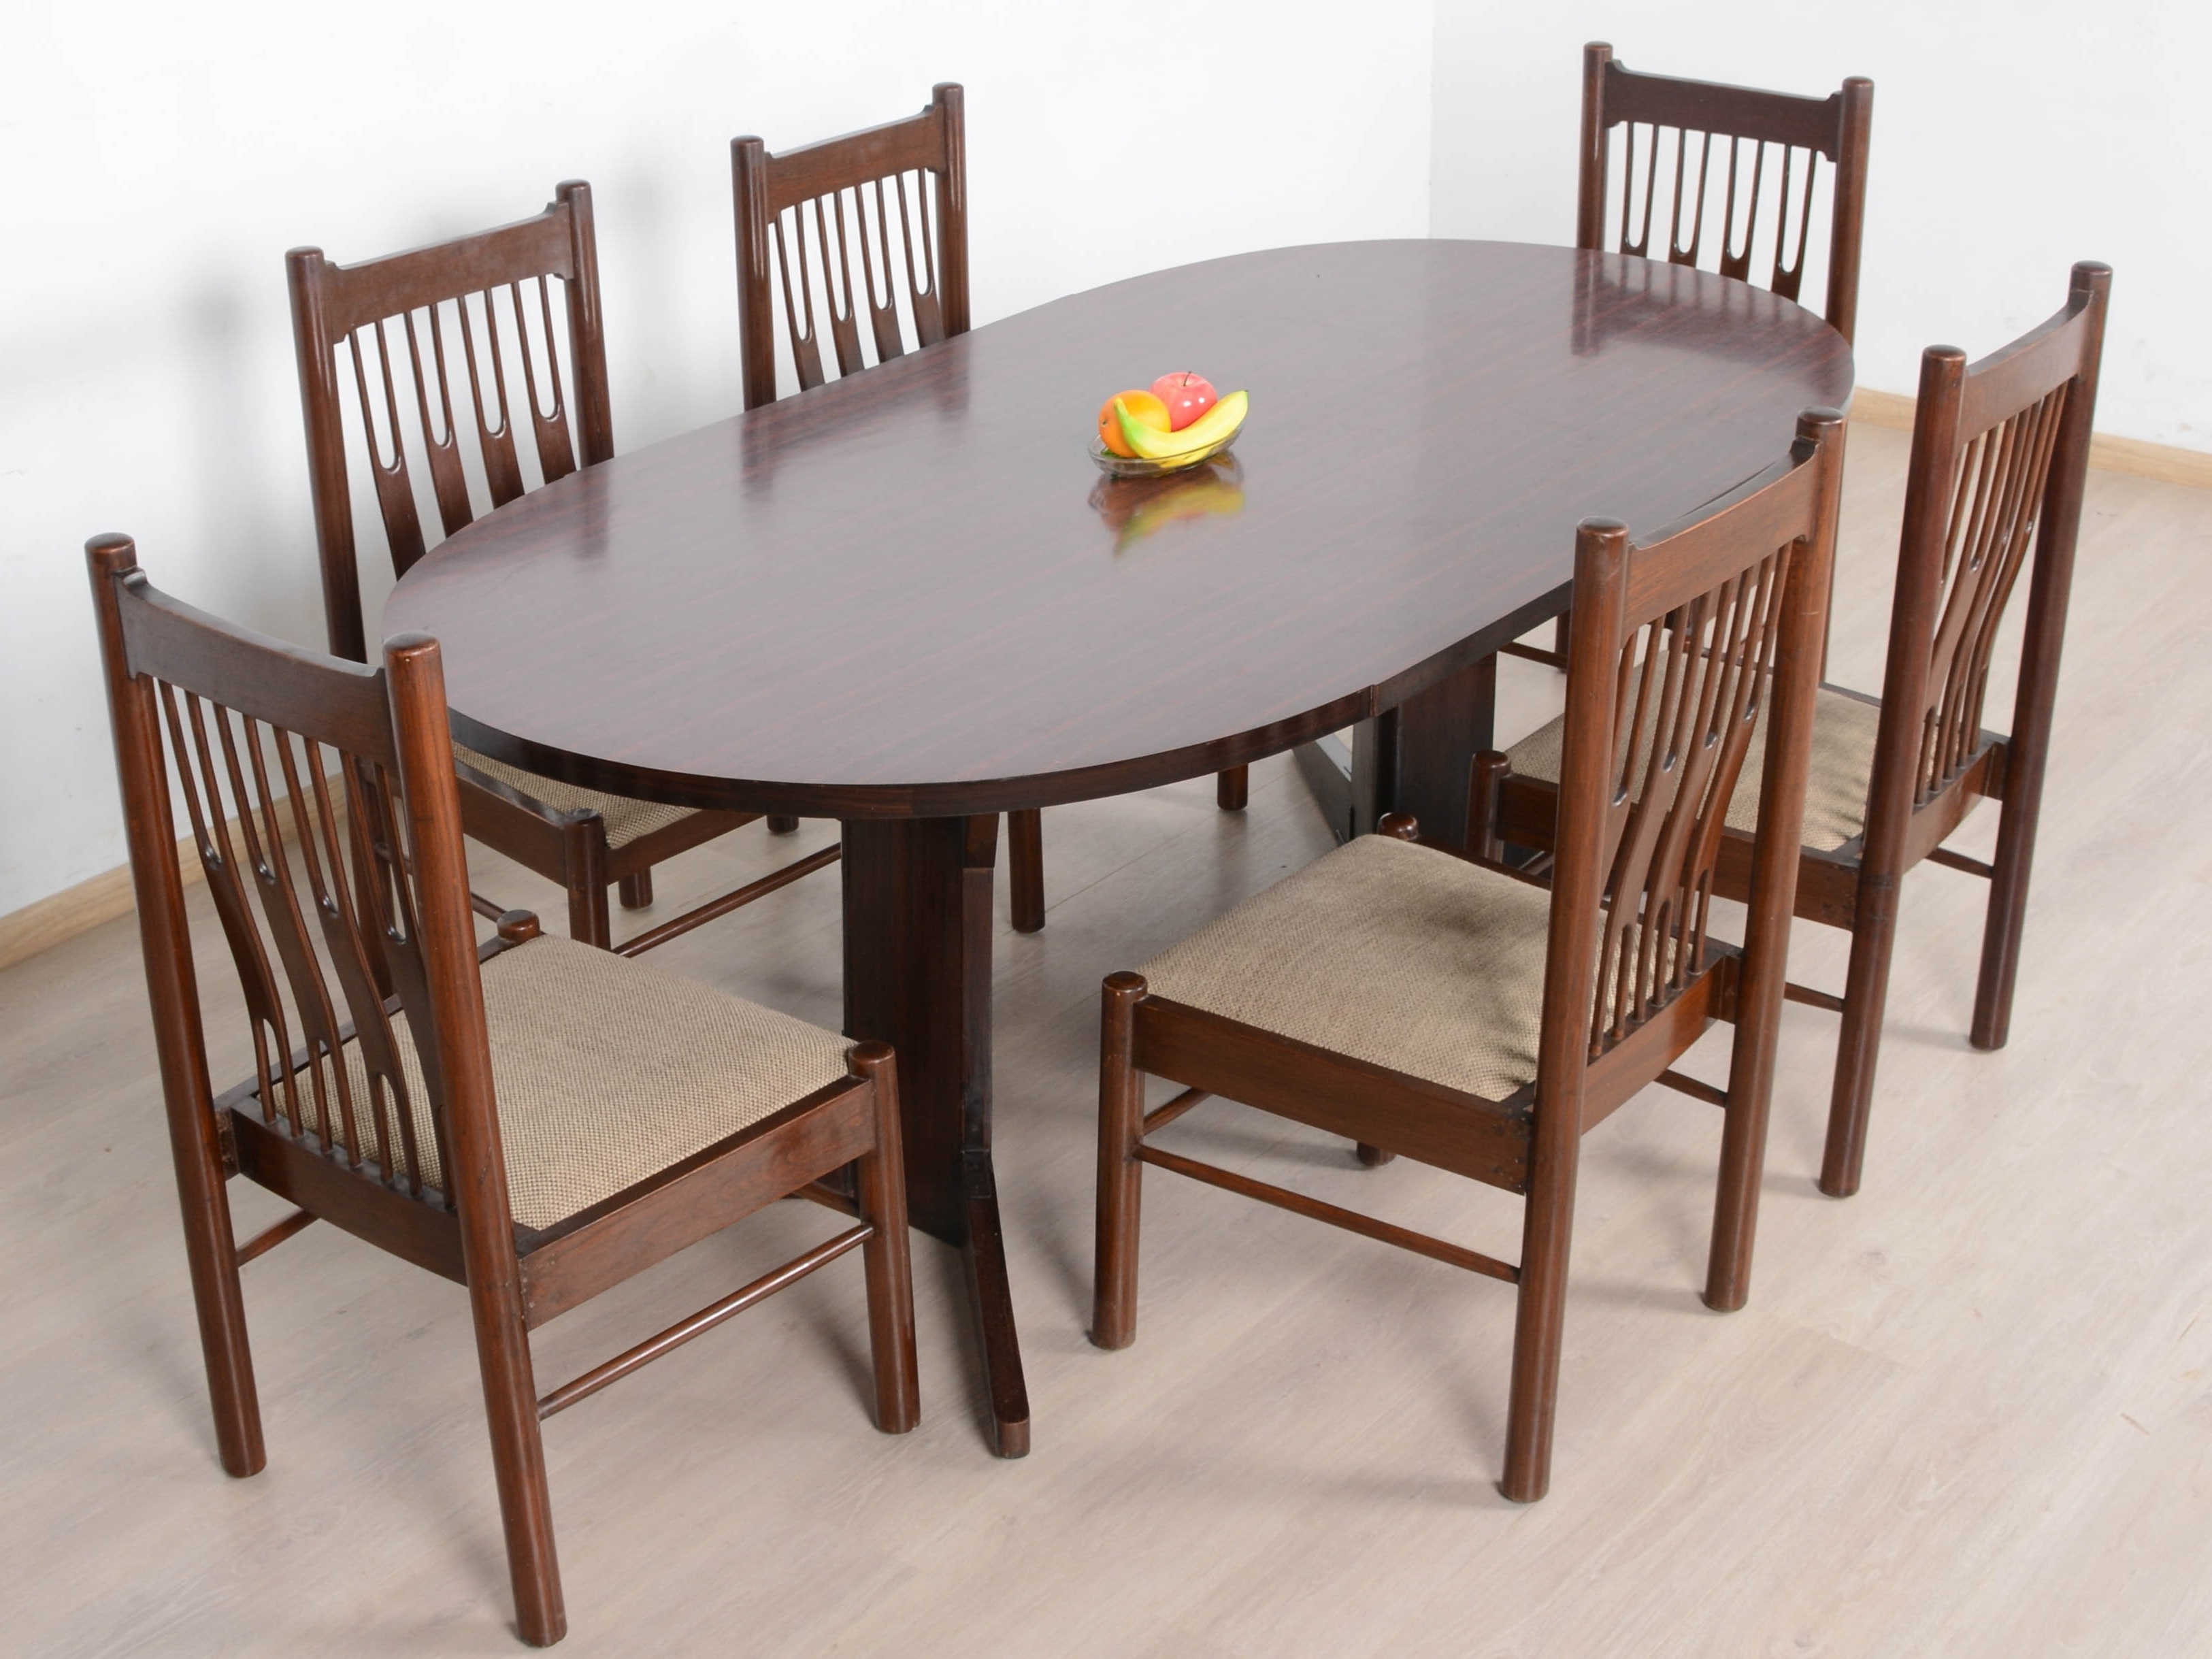 Favorite Mason Teak 6 Seater Dining Table Set: Buy And Sell Used Furniture Intended For Six Seater Dining Tables (View 15 of 25)